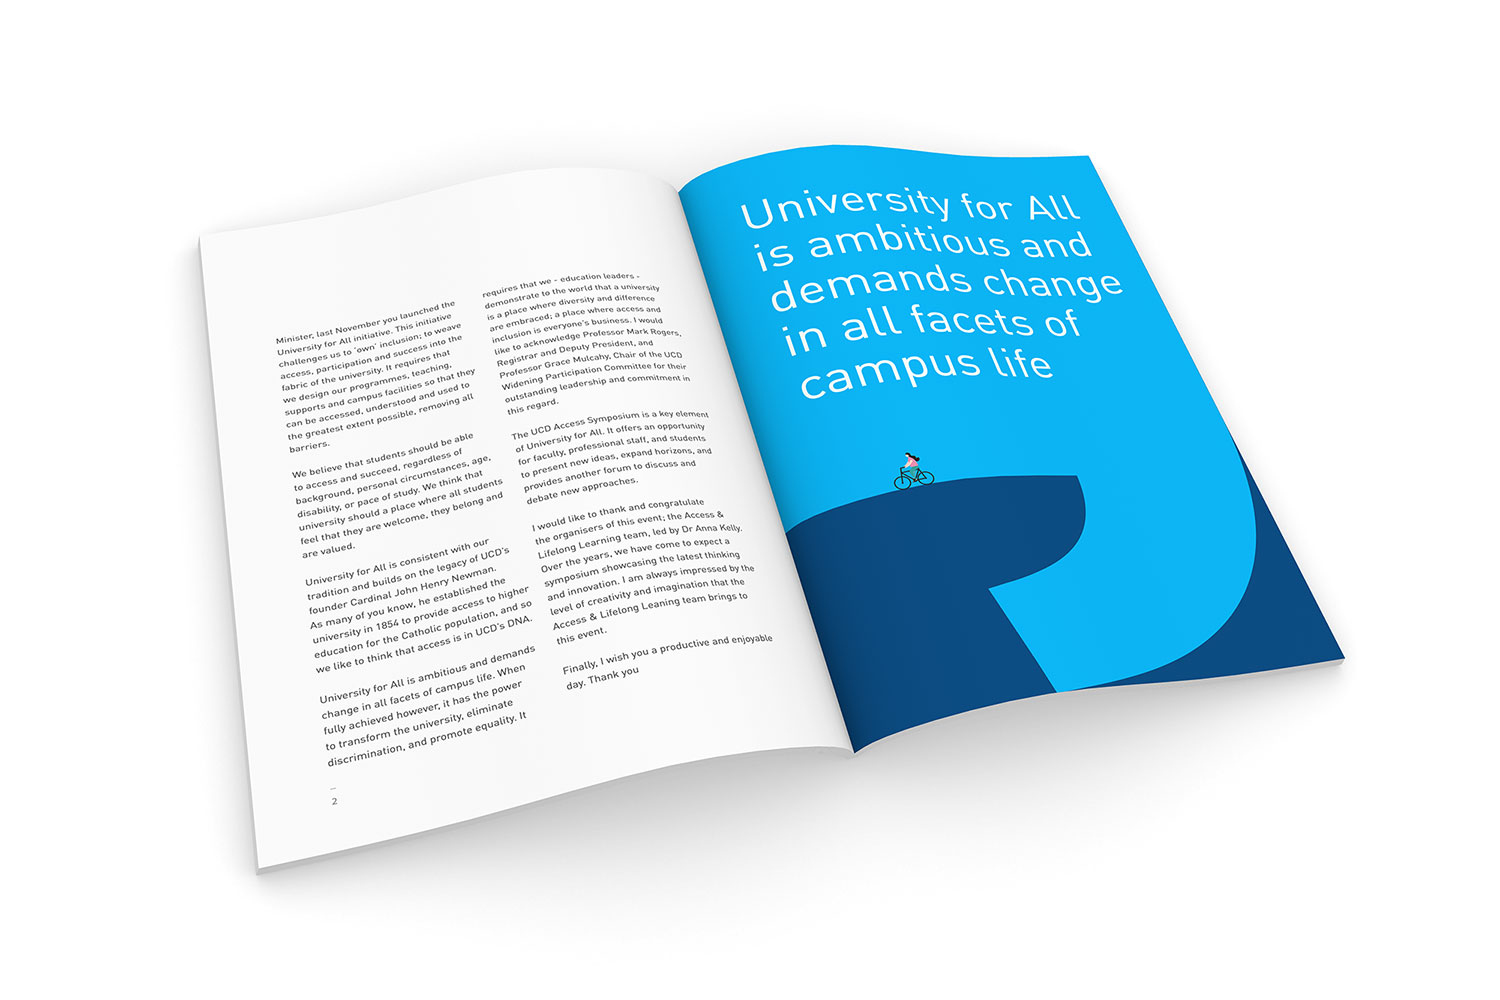 This publication for University College Dublin deals with the subject of inclusion, and required an accessible design incorporating the tenets of Universal Design for Learning.